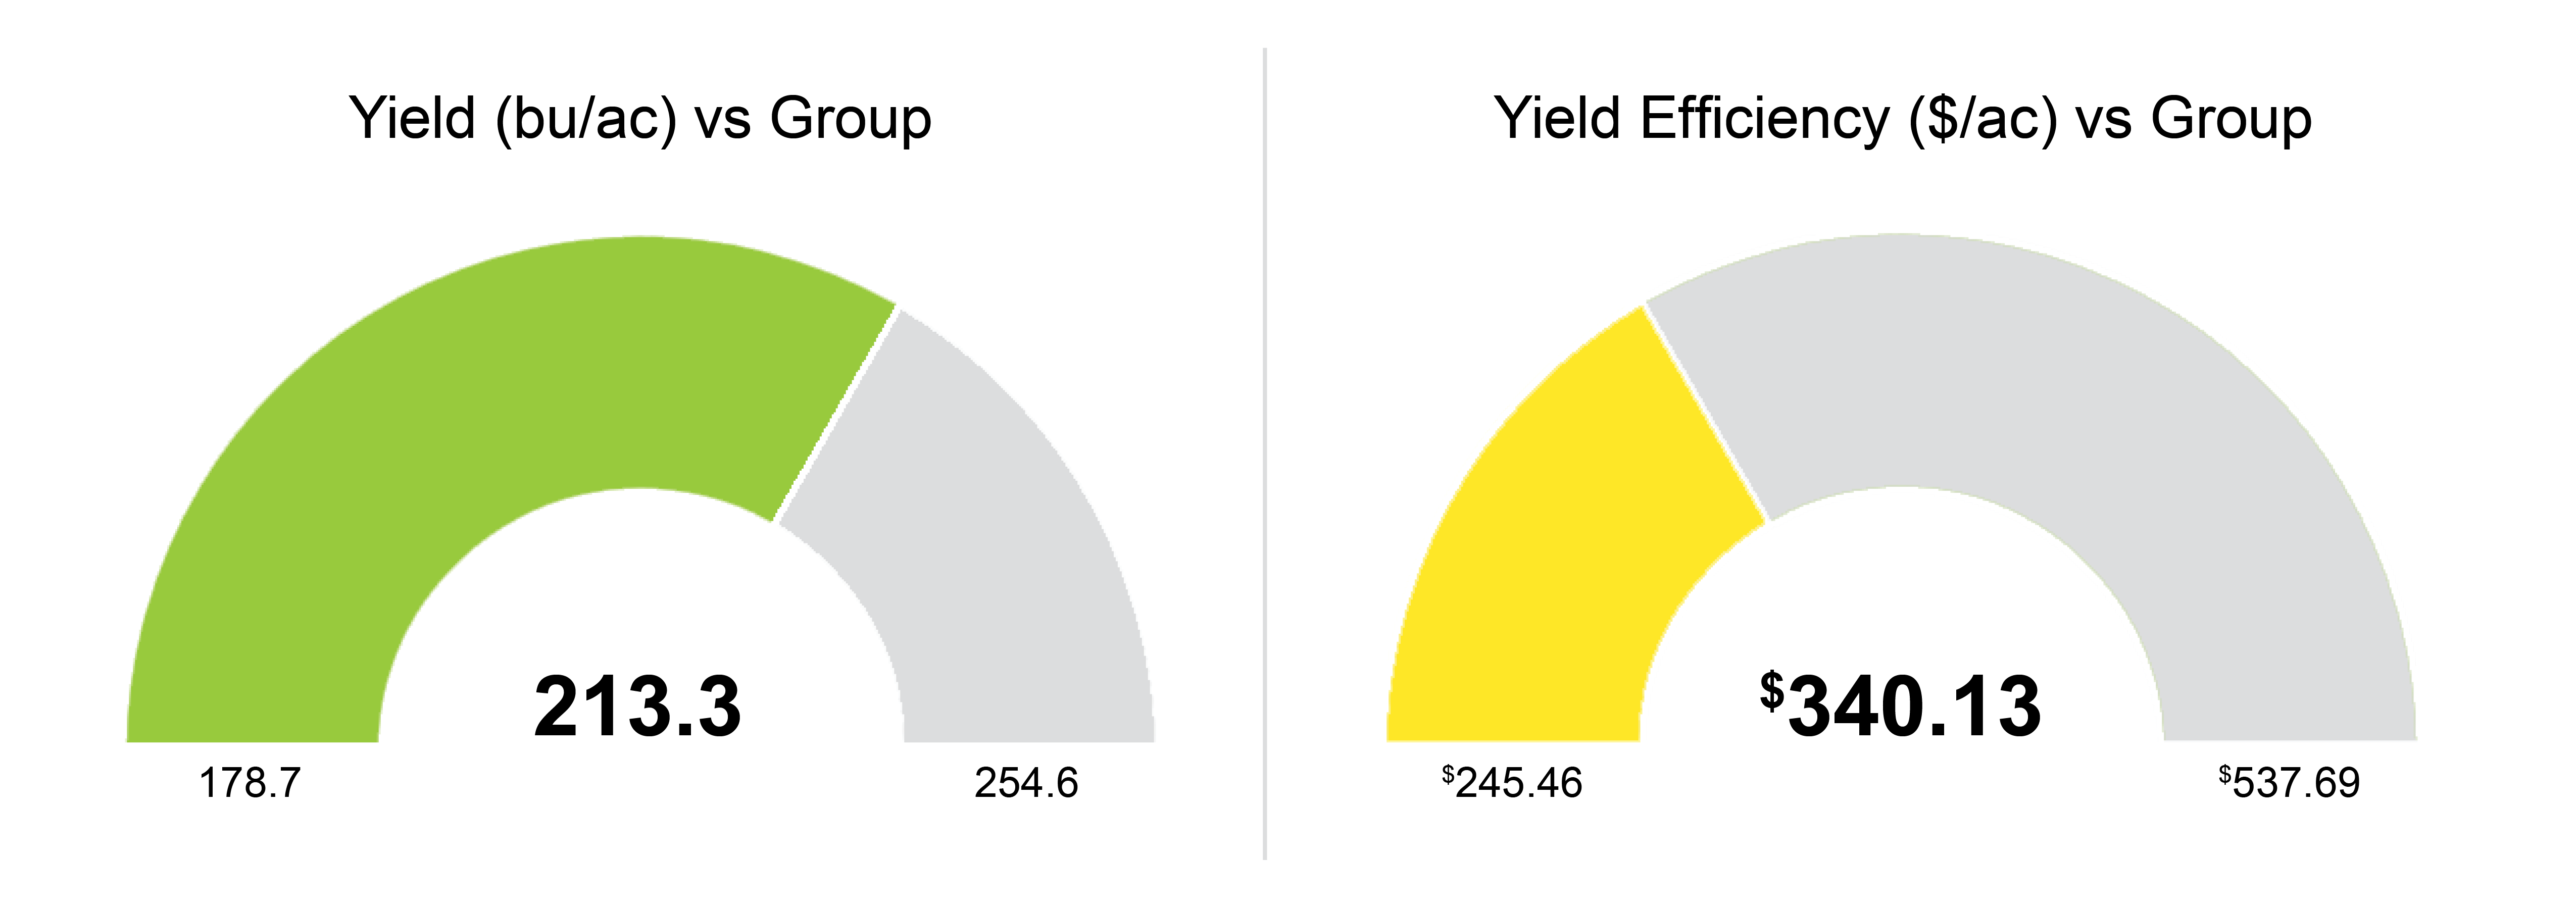 Yield Efficiency Score